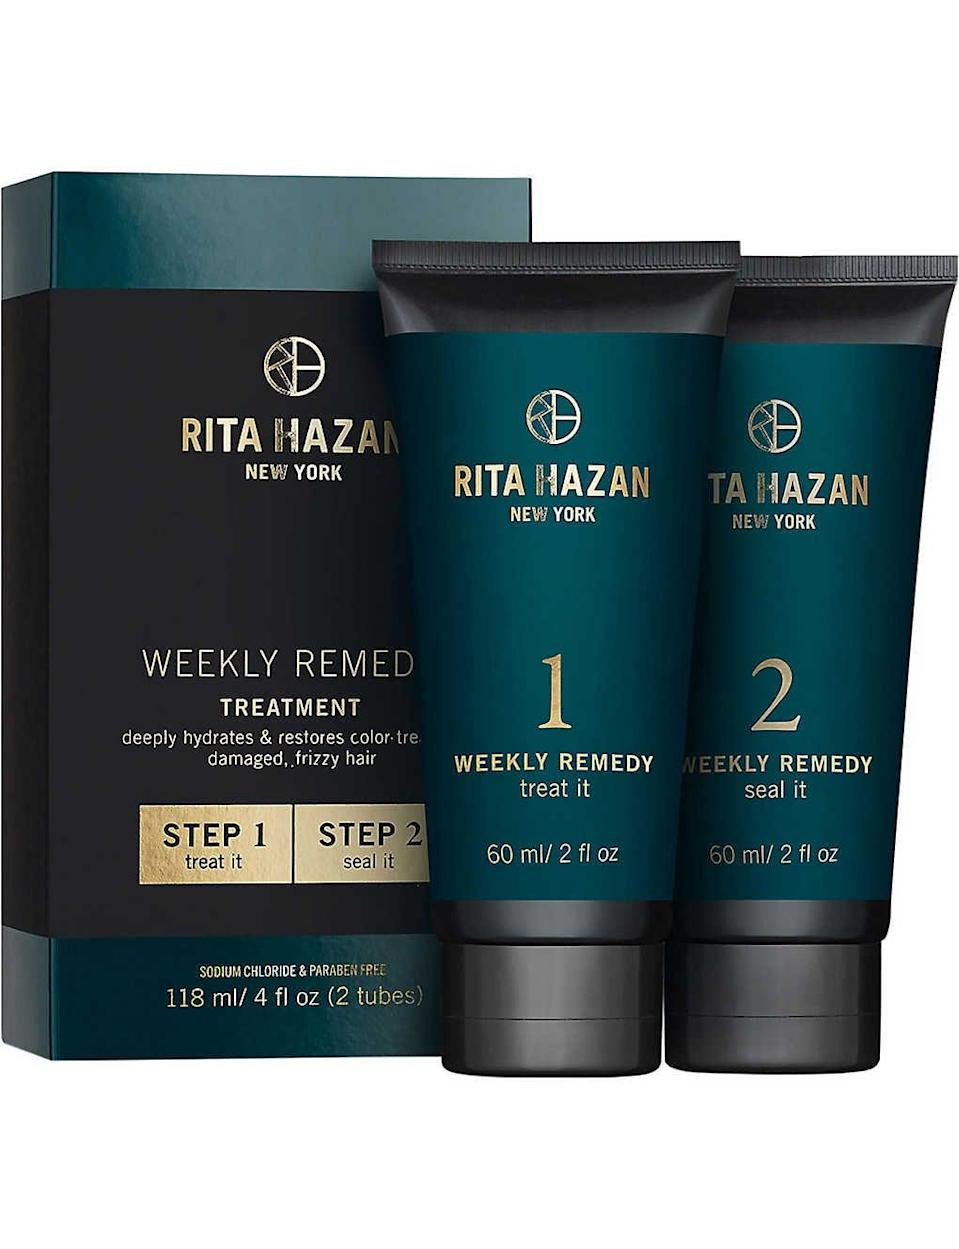 <p>The <span>Rita Hazan Weekly Remedy Treatment</span> ($42) is an impressive masking treatment for color-treated hair. The quick, two-step treatment can be used in the shower and rinsed off immediately, which means no hanging around for it to soak in. It's definitely one of the most expensive masks on the market, but I can confirm the promise of immediate results (think: less frizz, smoother strands, brighter color in one wash) is true. I was also surprised how long these small tubes lasted - a little goes a long way.</p>